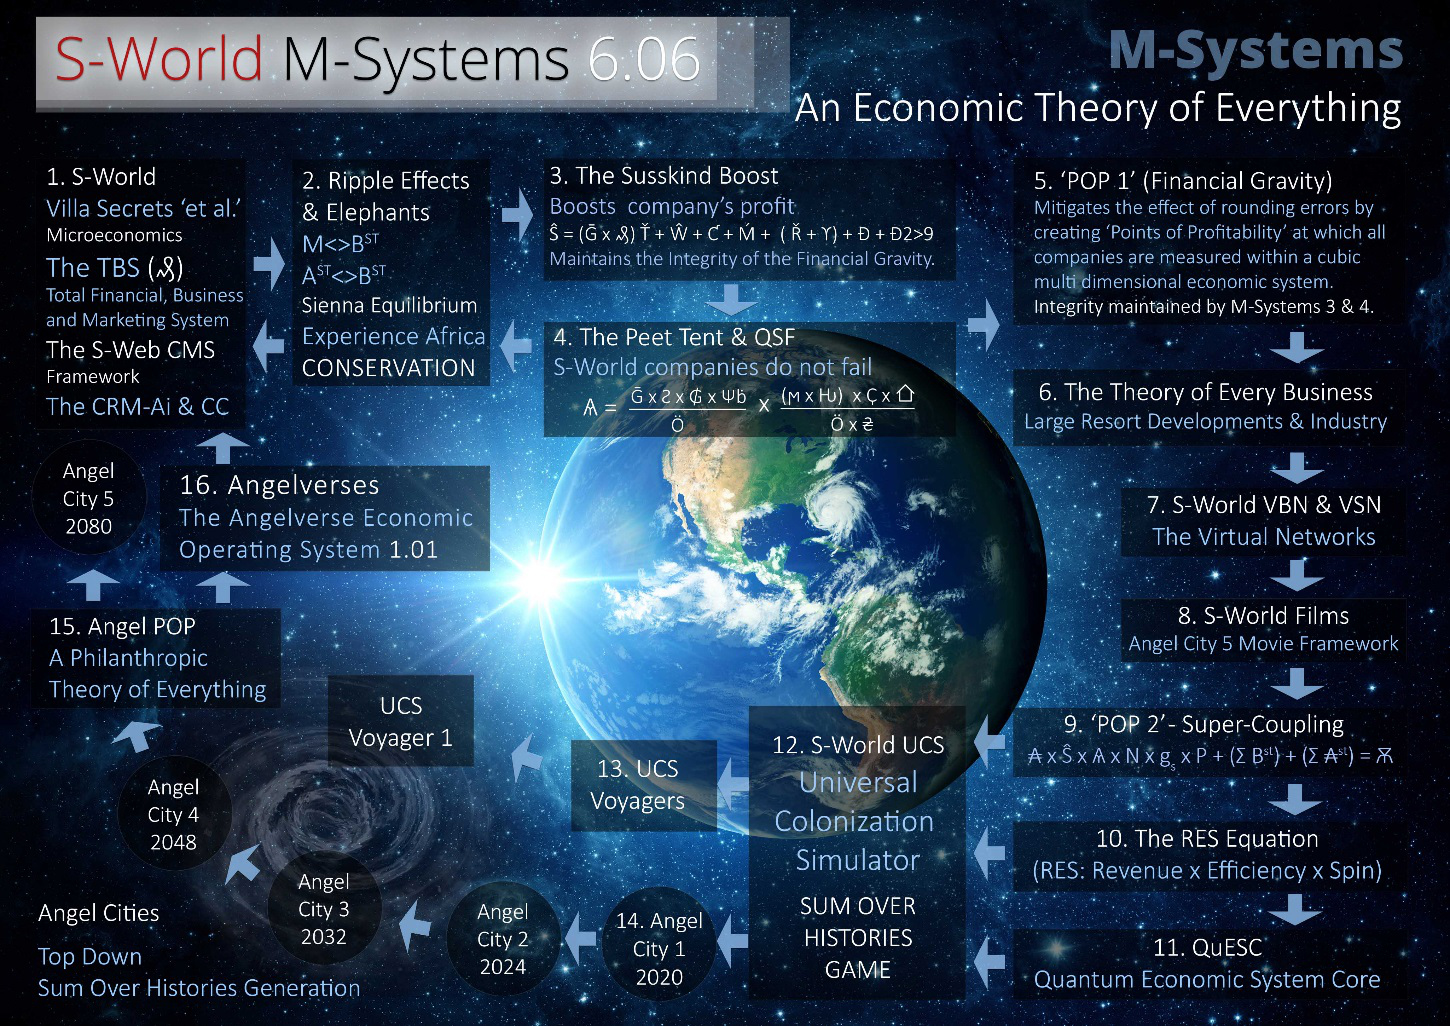 S-World-M-Systems